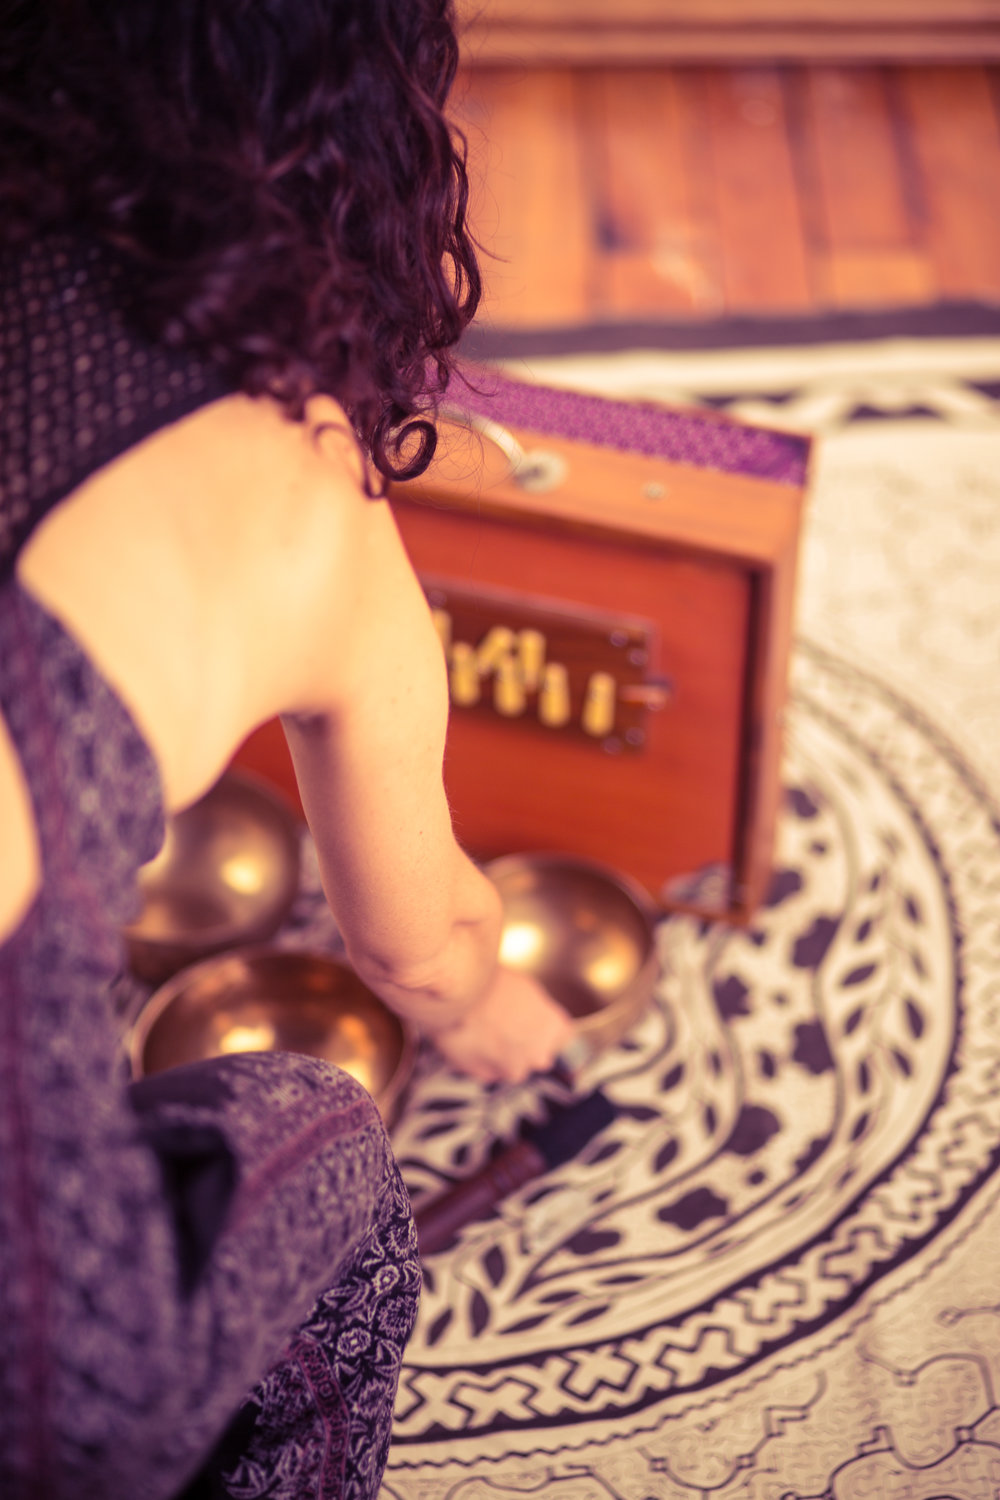 Intuitive Sound Mentorships - Enhance your life, your practice, and your work through a guided 8-week exploration of how sound heals and transforms.